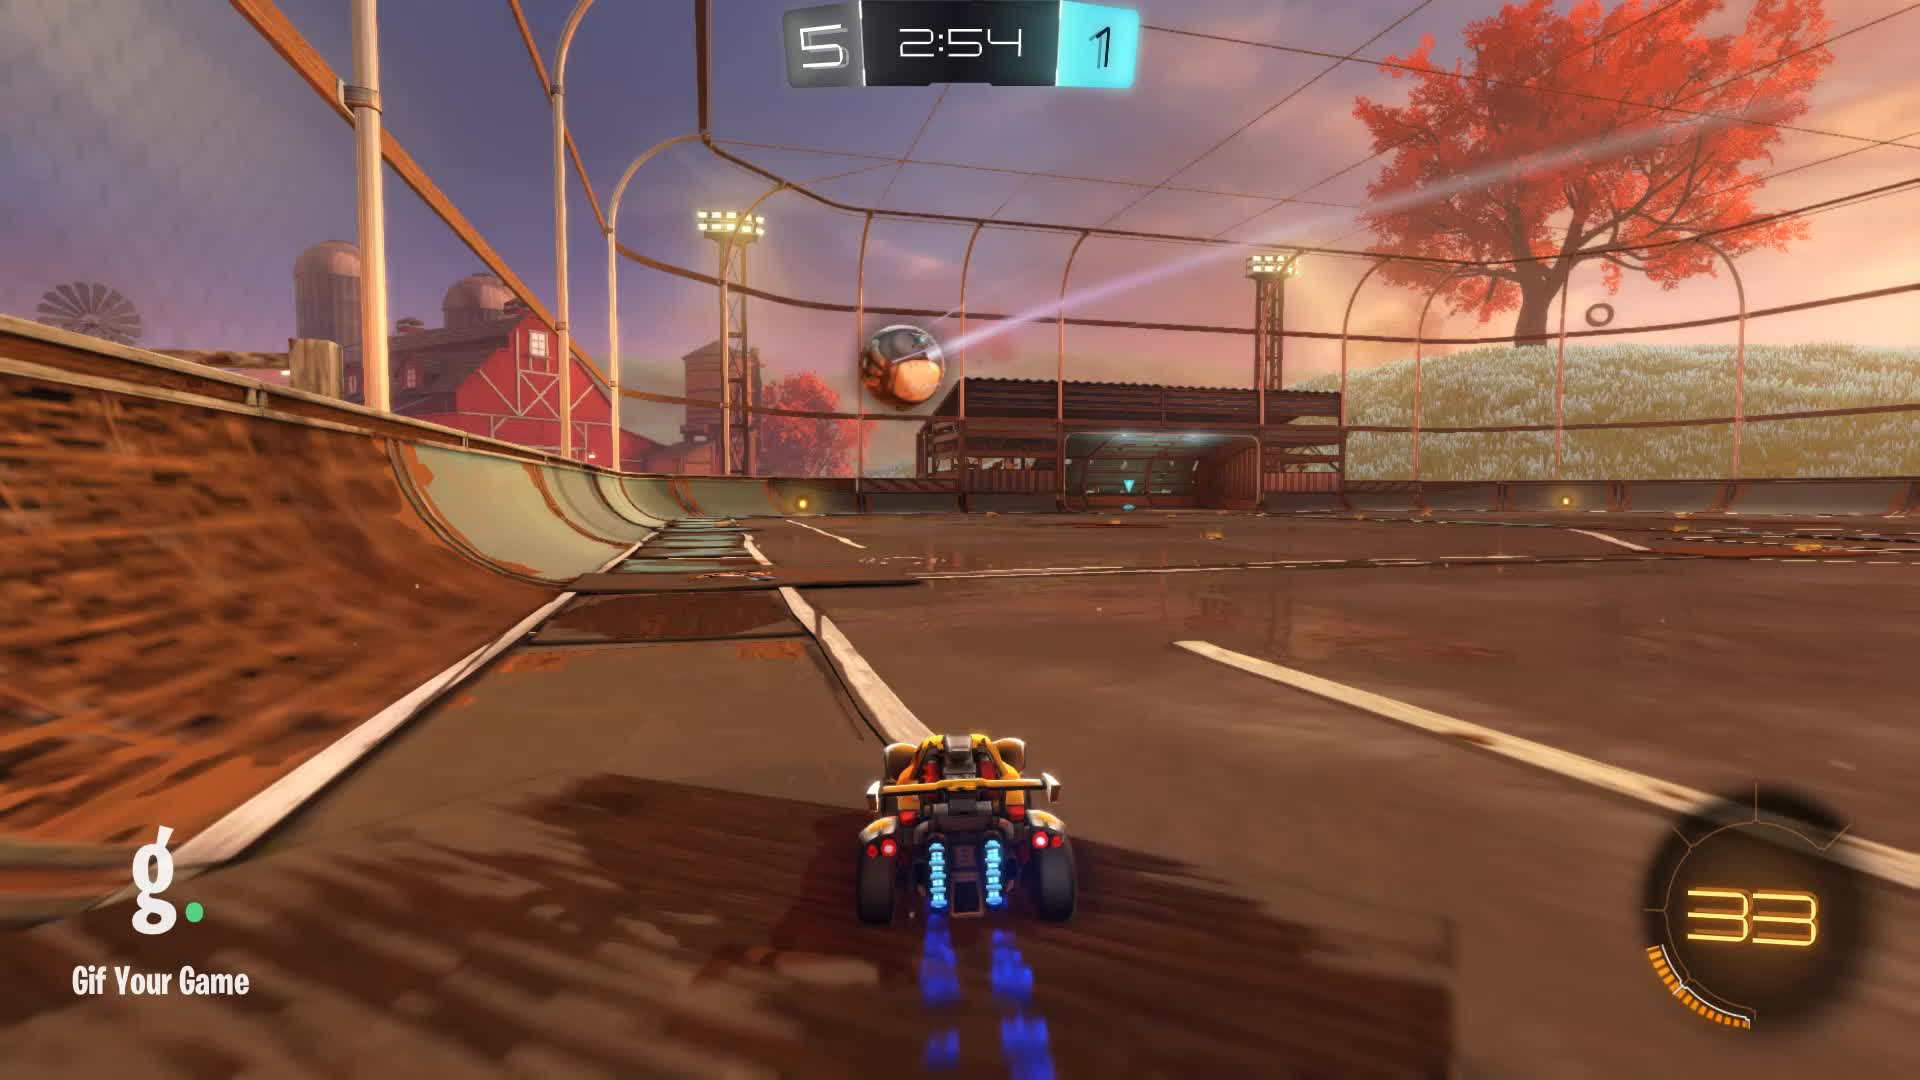 Assist, Gif Your Game, GifYourGame, Rocket League, RocketLeague, datboi, Assist 5: datboi GIFs